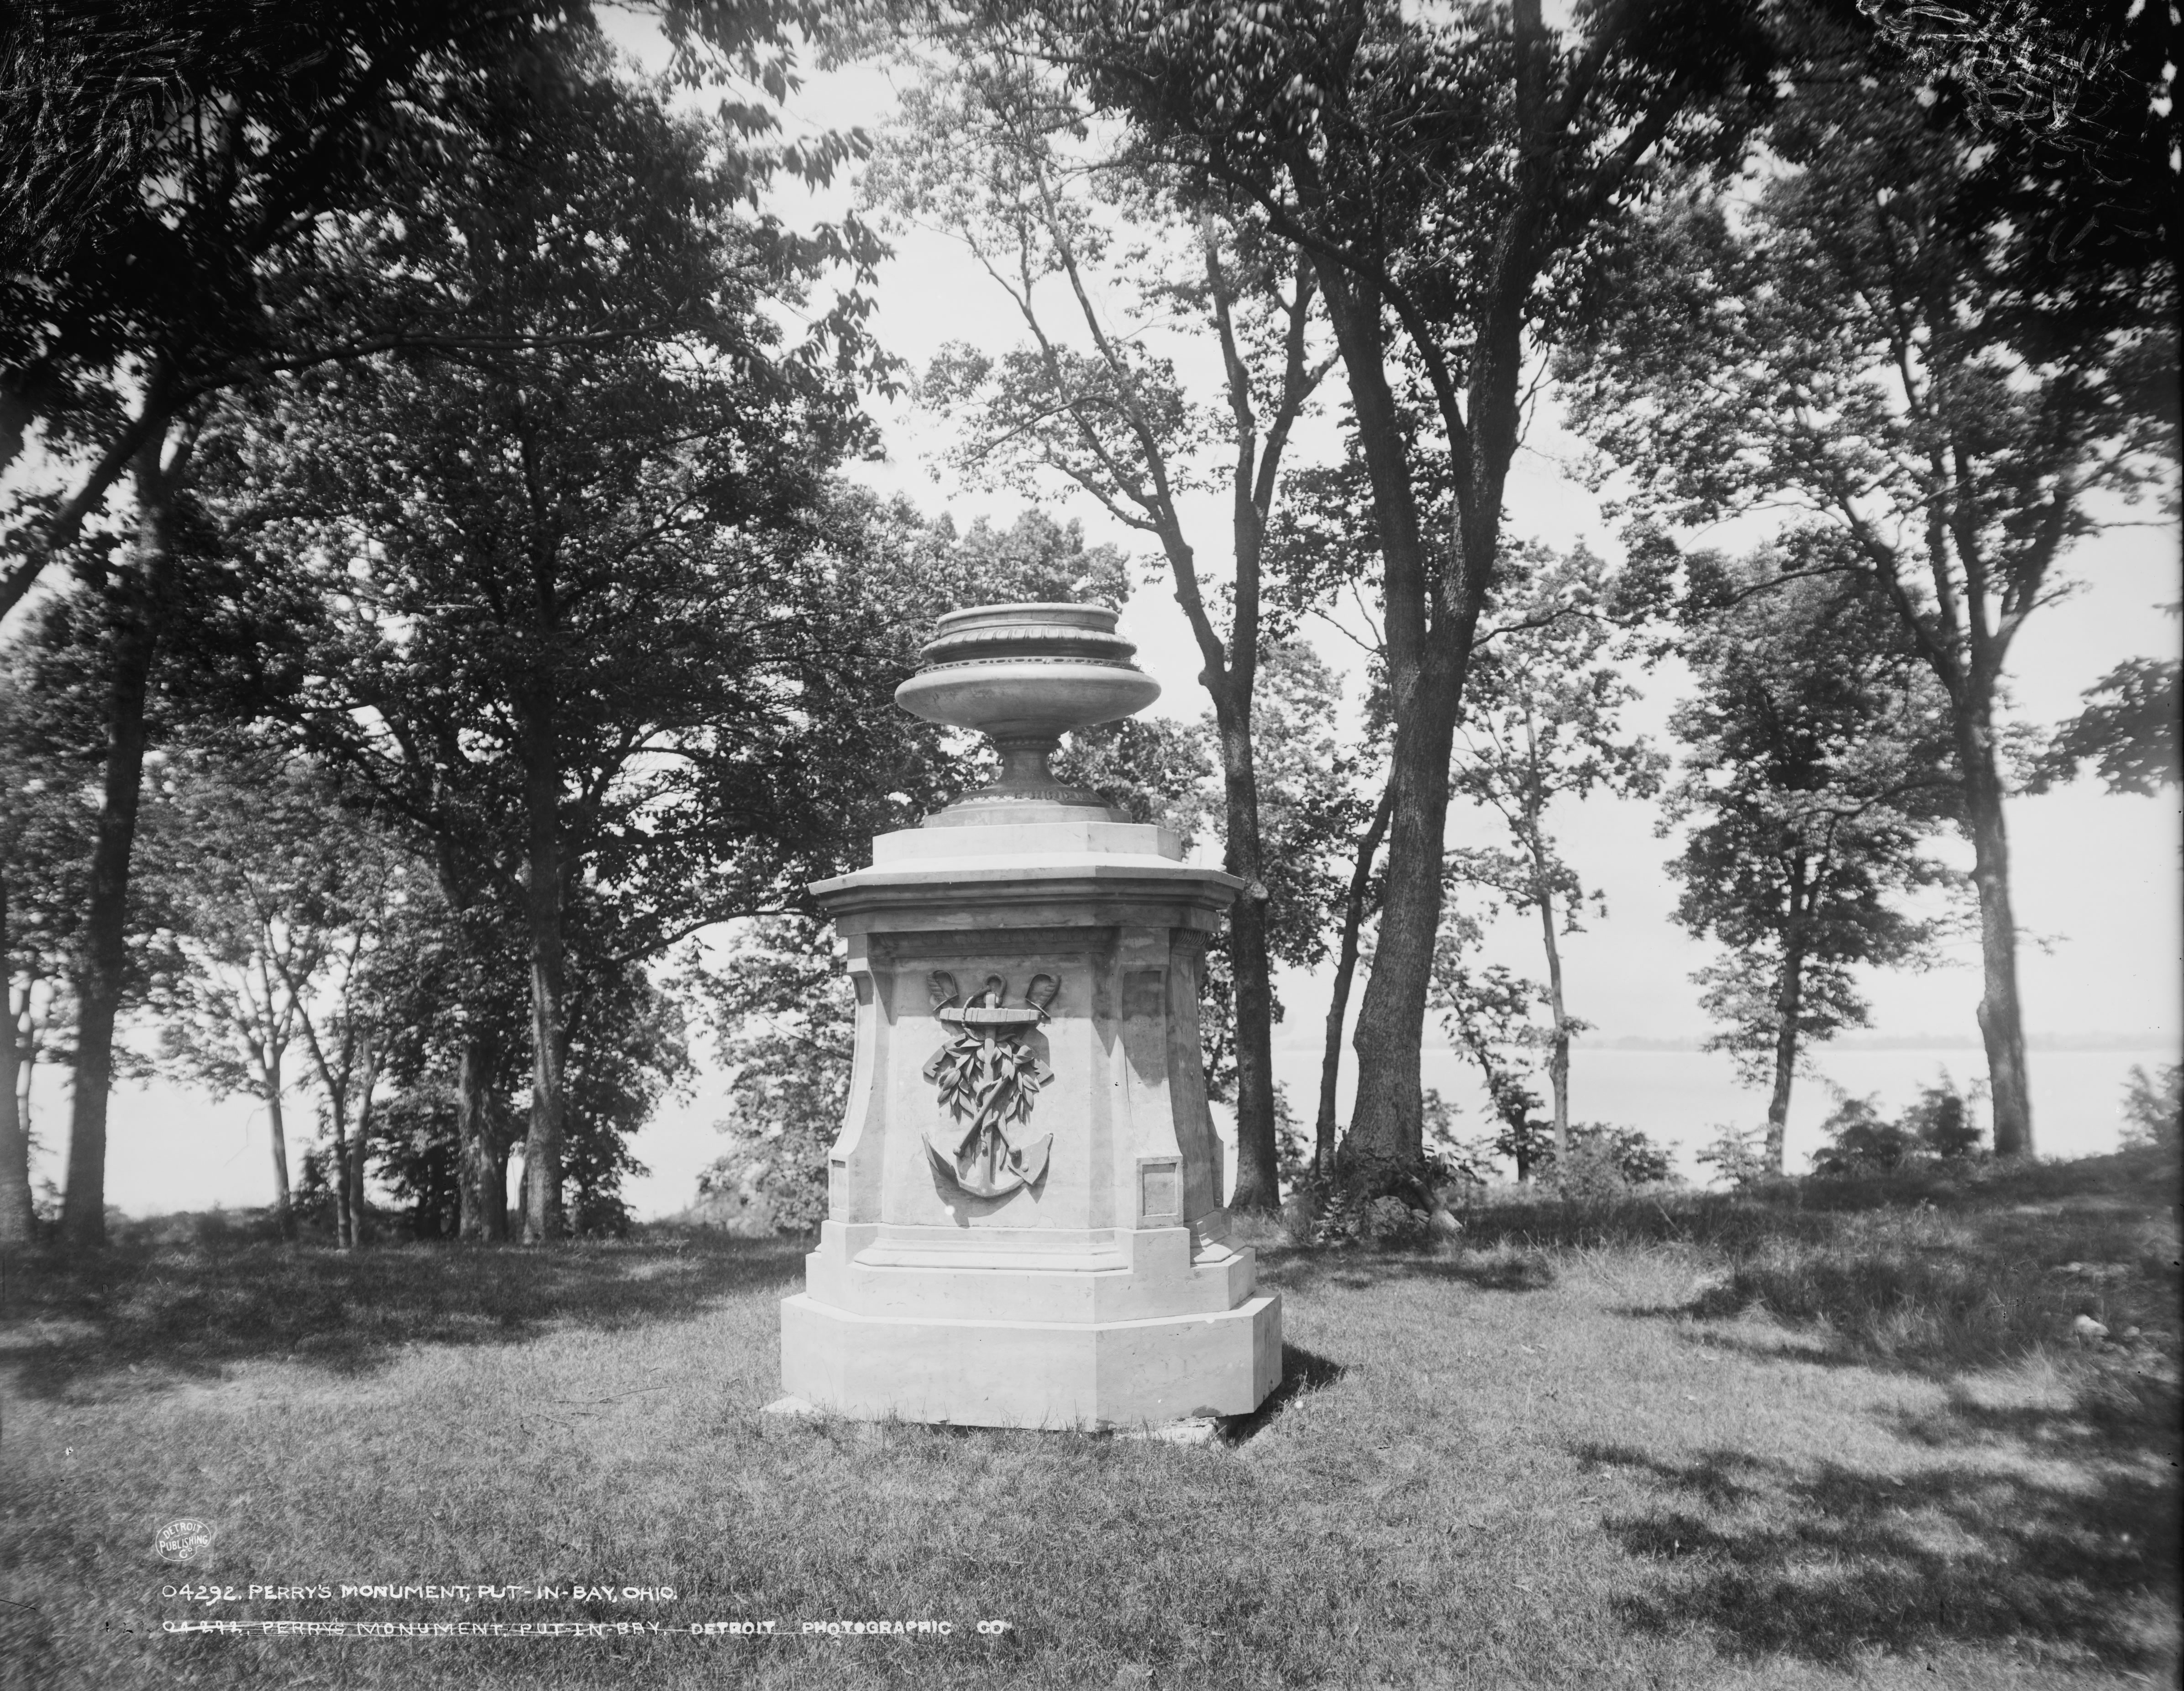 The Perry Monument in Put-in-Bay, Ohio